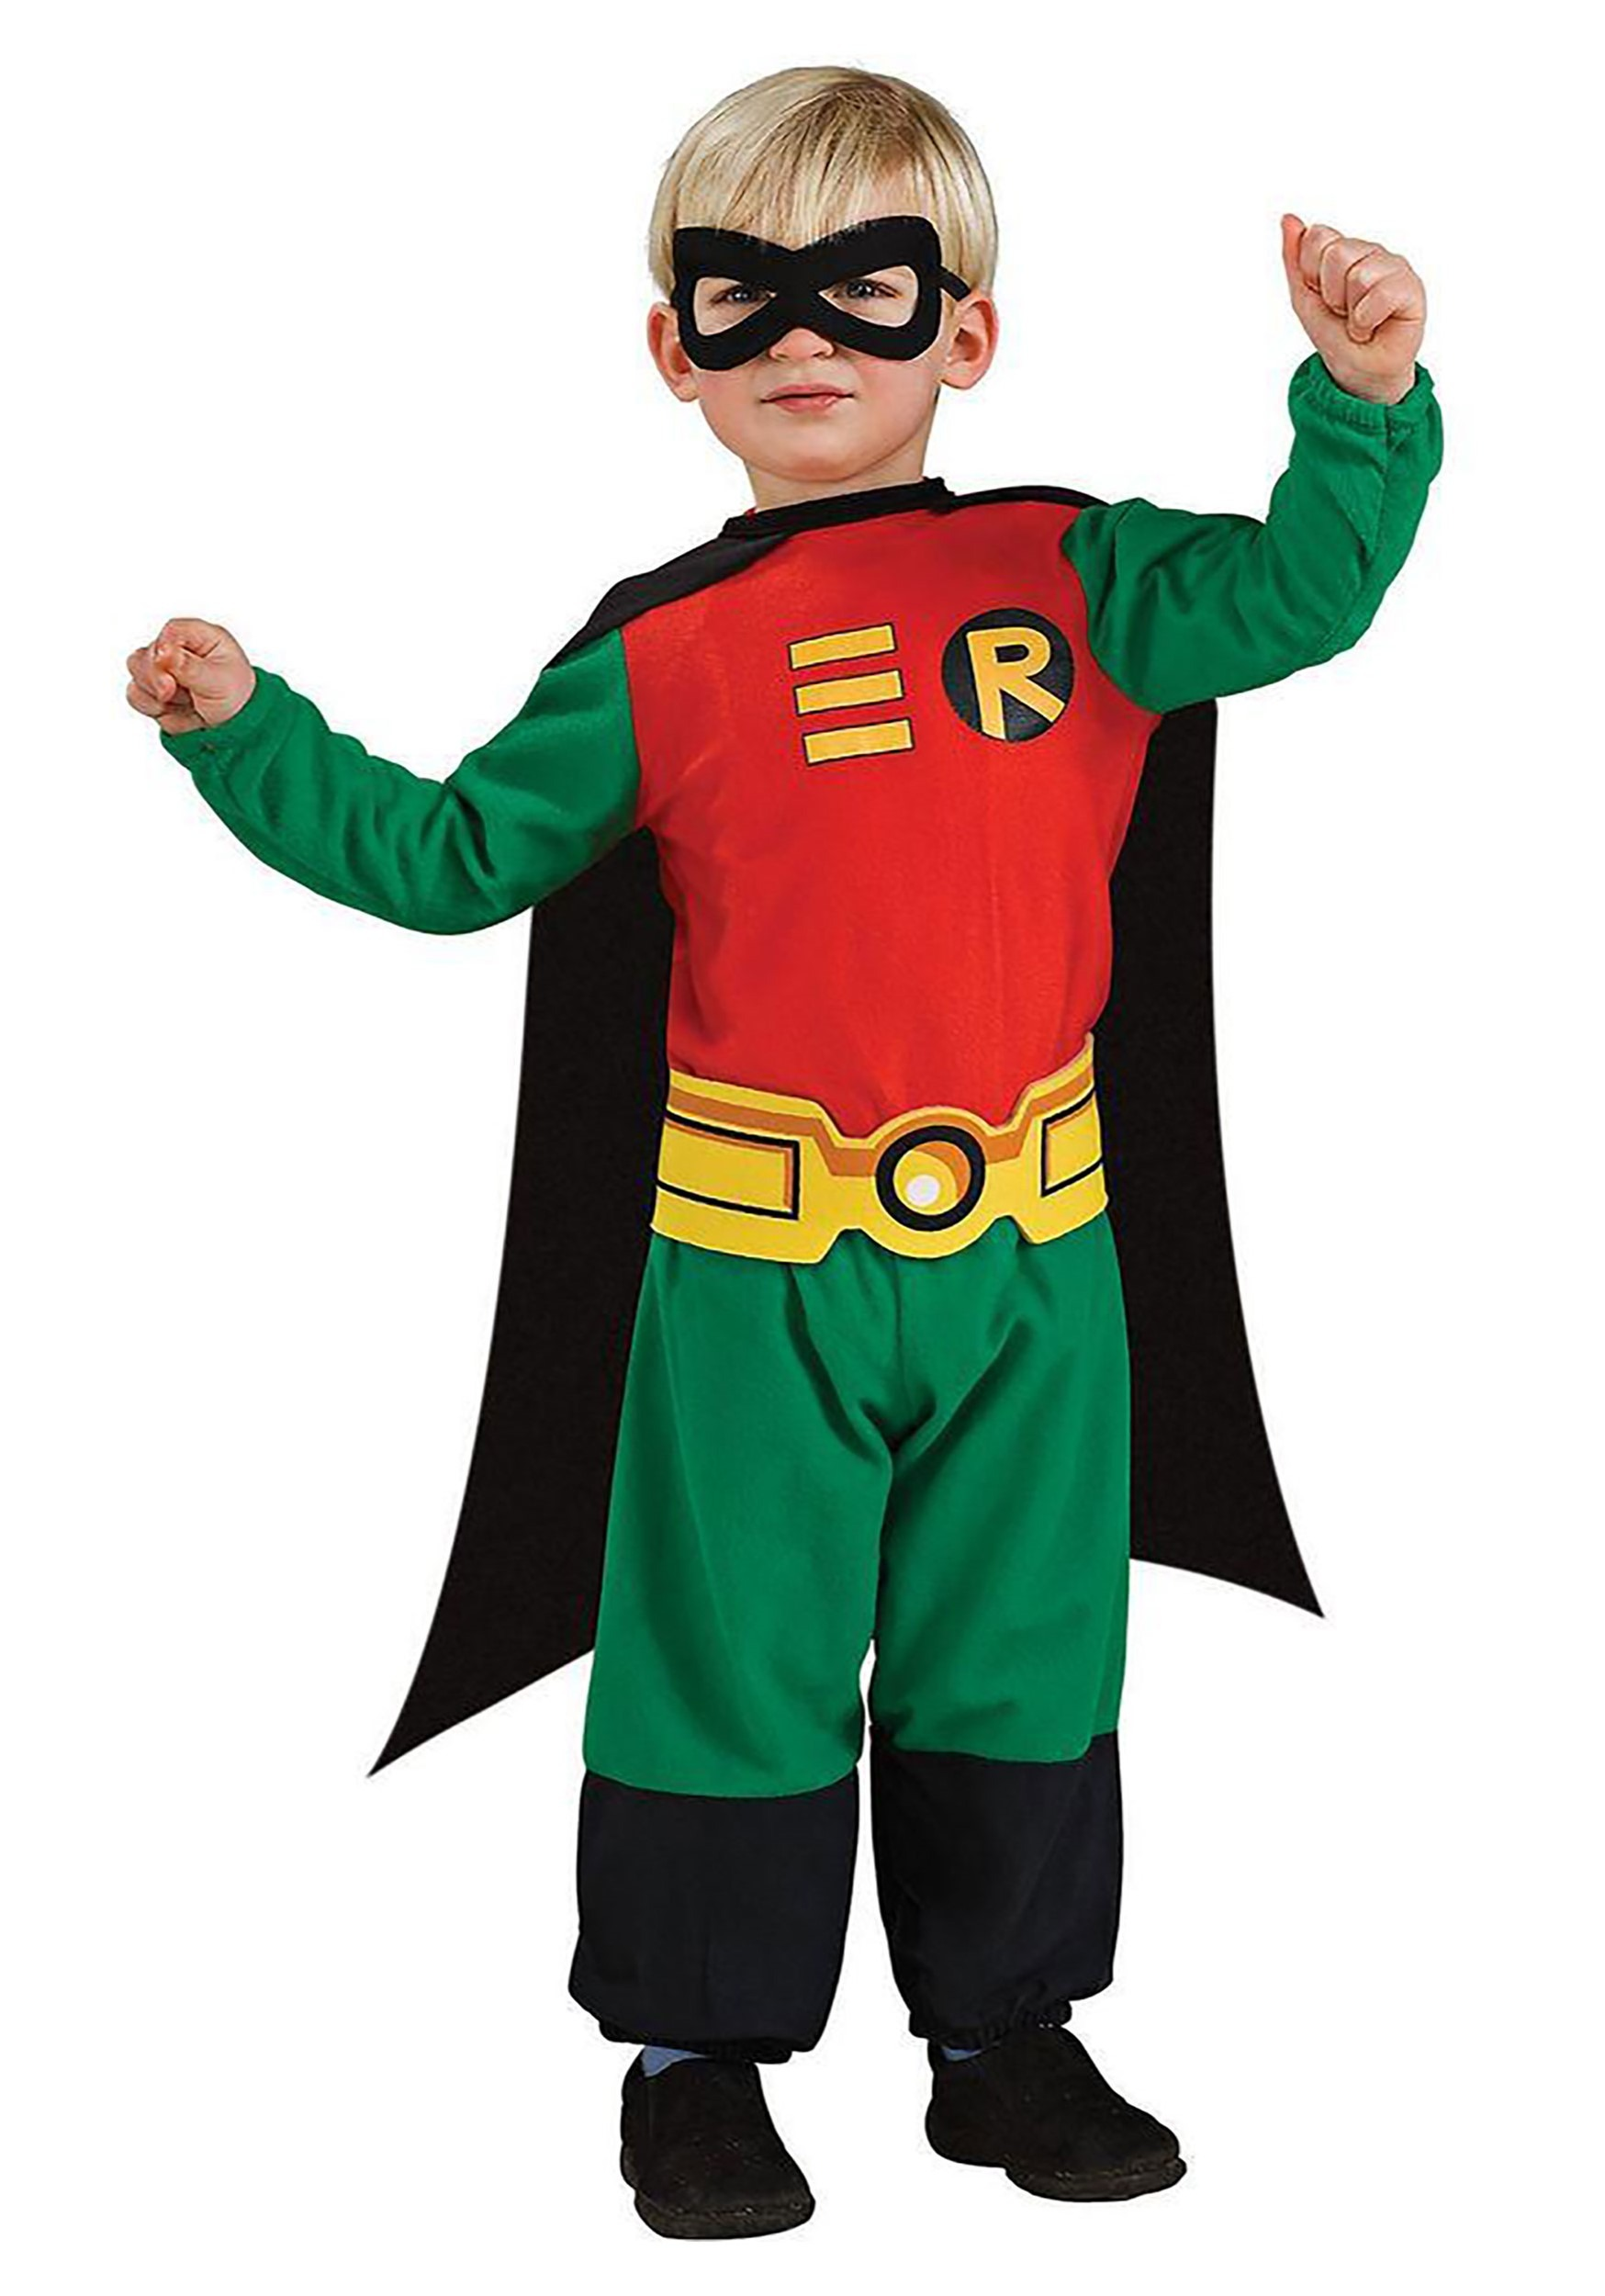 Toddler Halloween Costumes 12-18 Months Uk | Halloween Radio Site